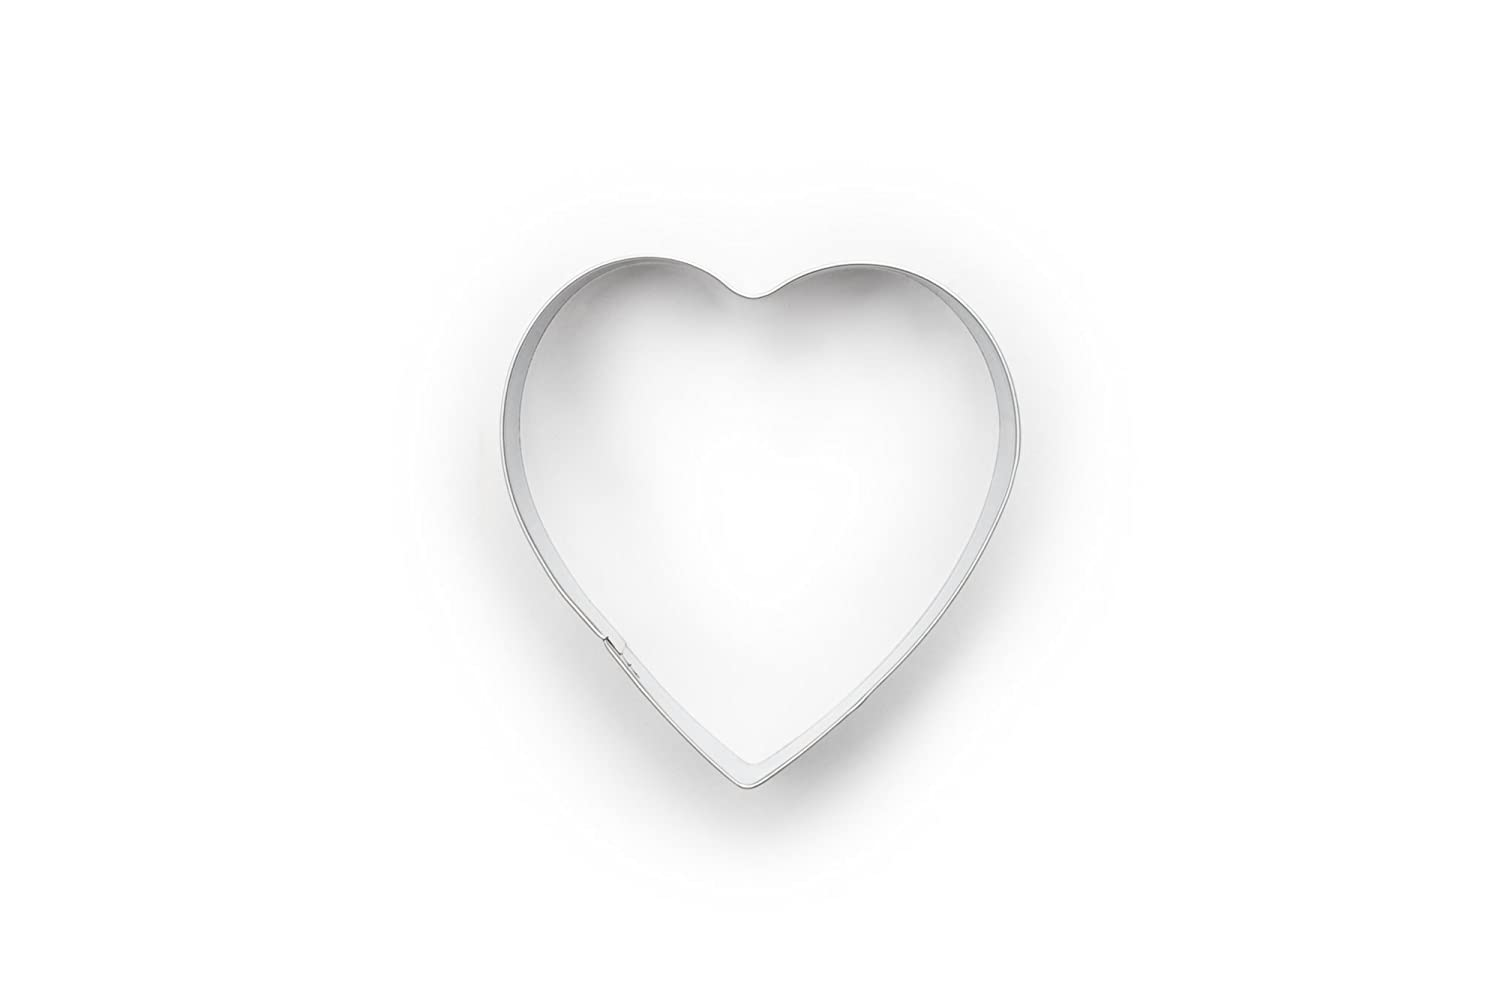 Fox Run 3370 Mini Heart Cookie Cutter, 1-Inch, Stainless Steel Fox Run Craftsmen